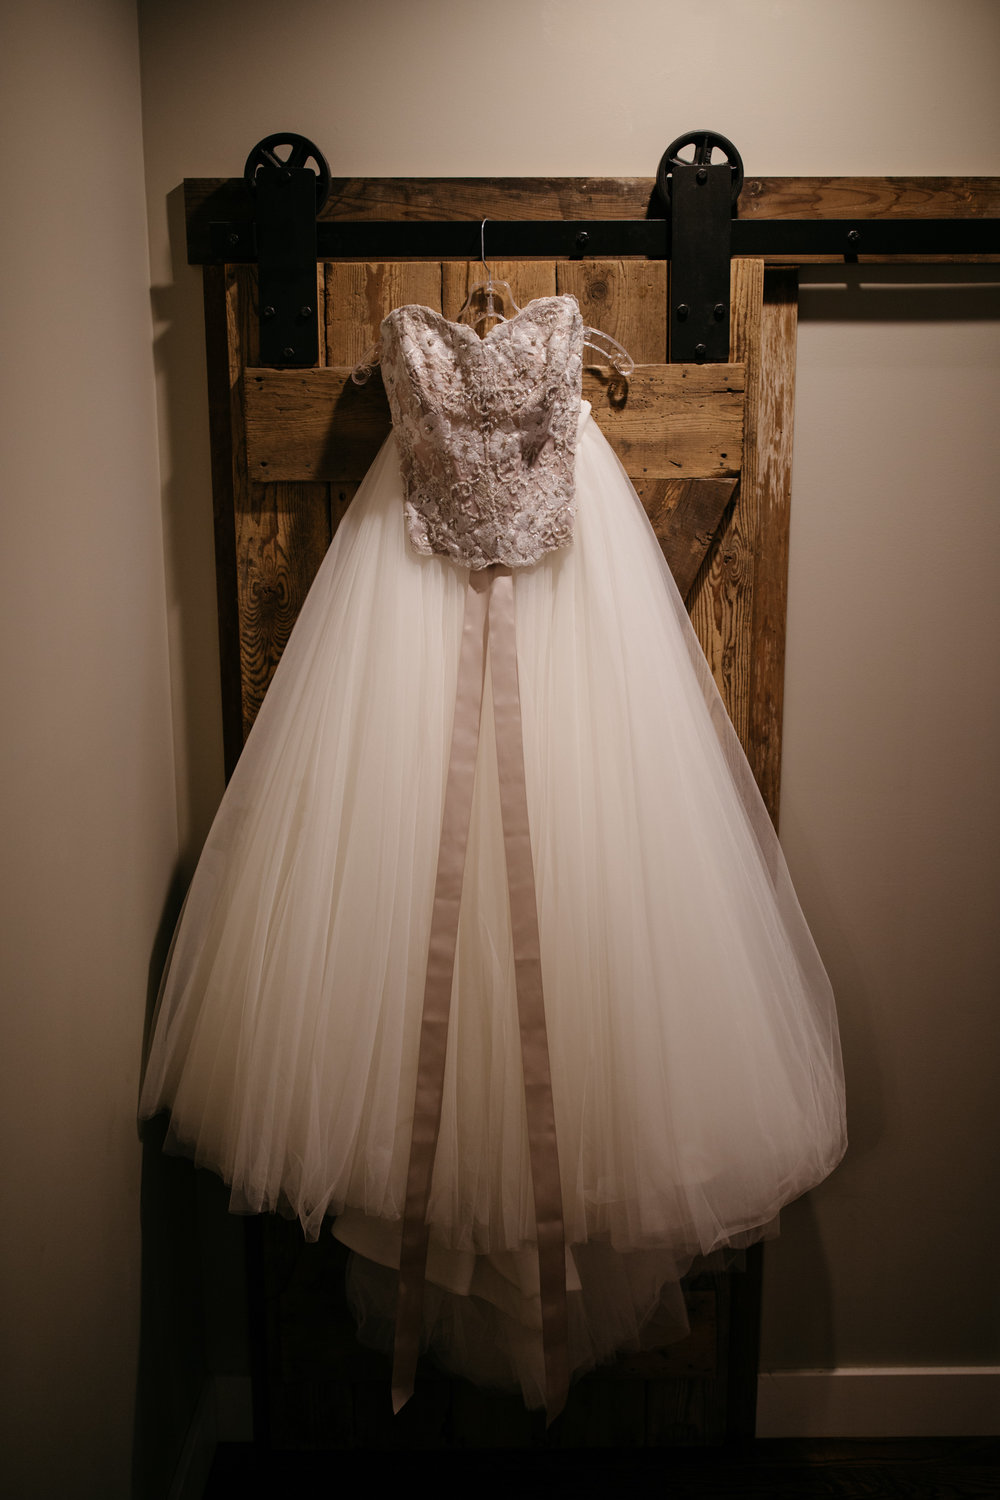 Pink wedding dress hanging in cabin at Grand View Lodge on Gull Lake